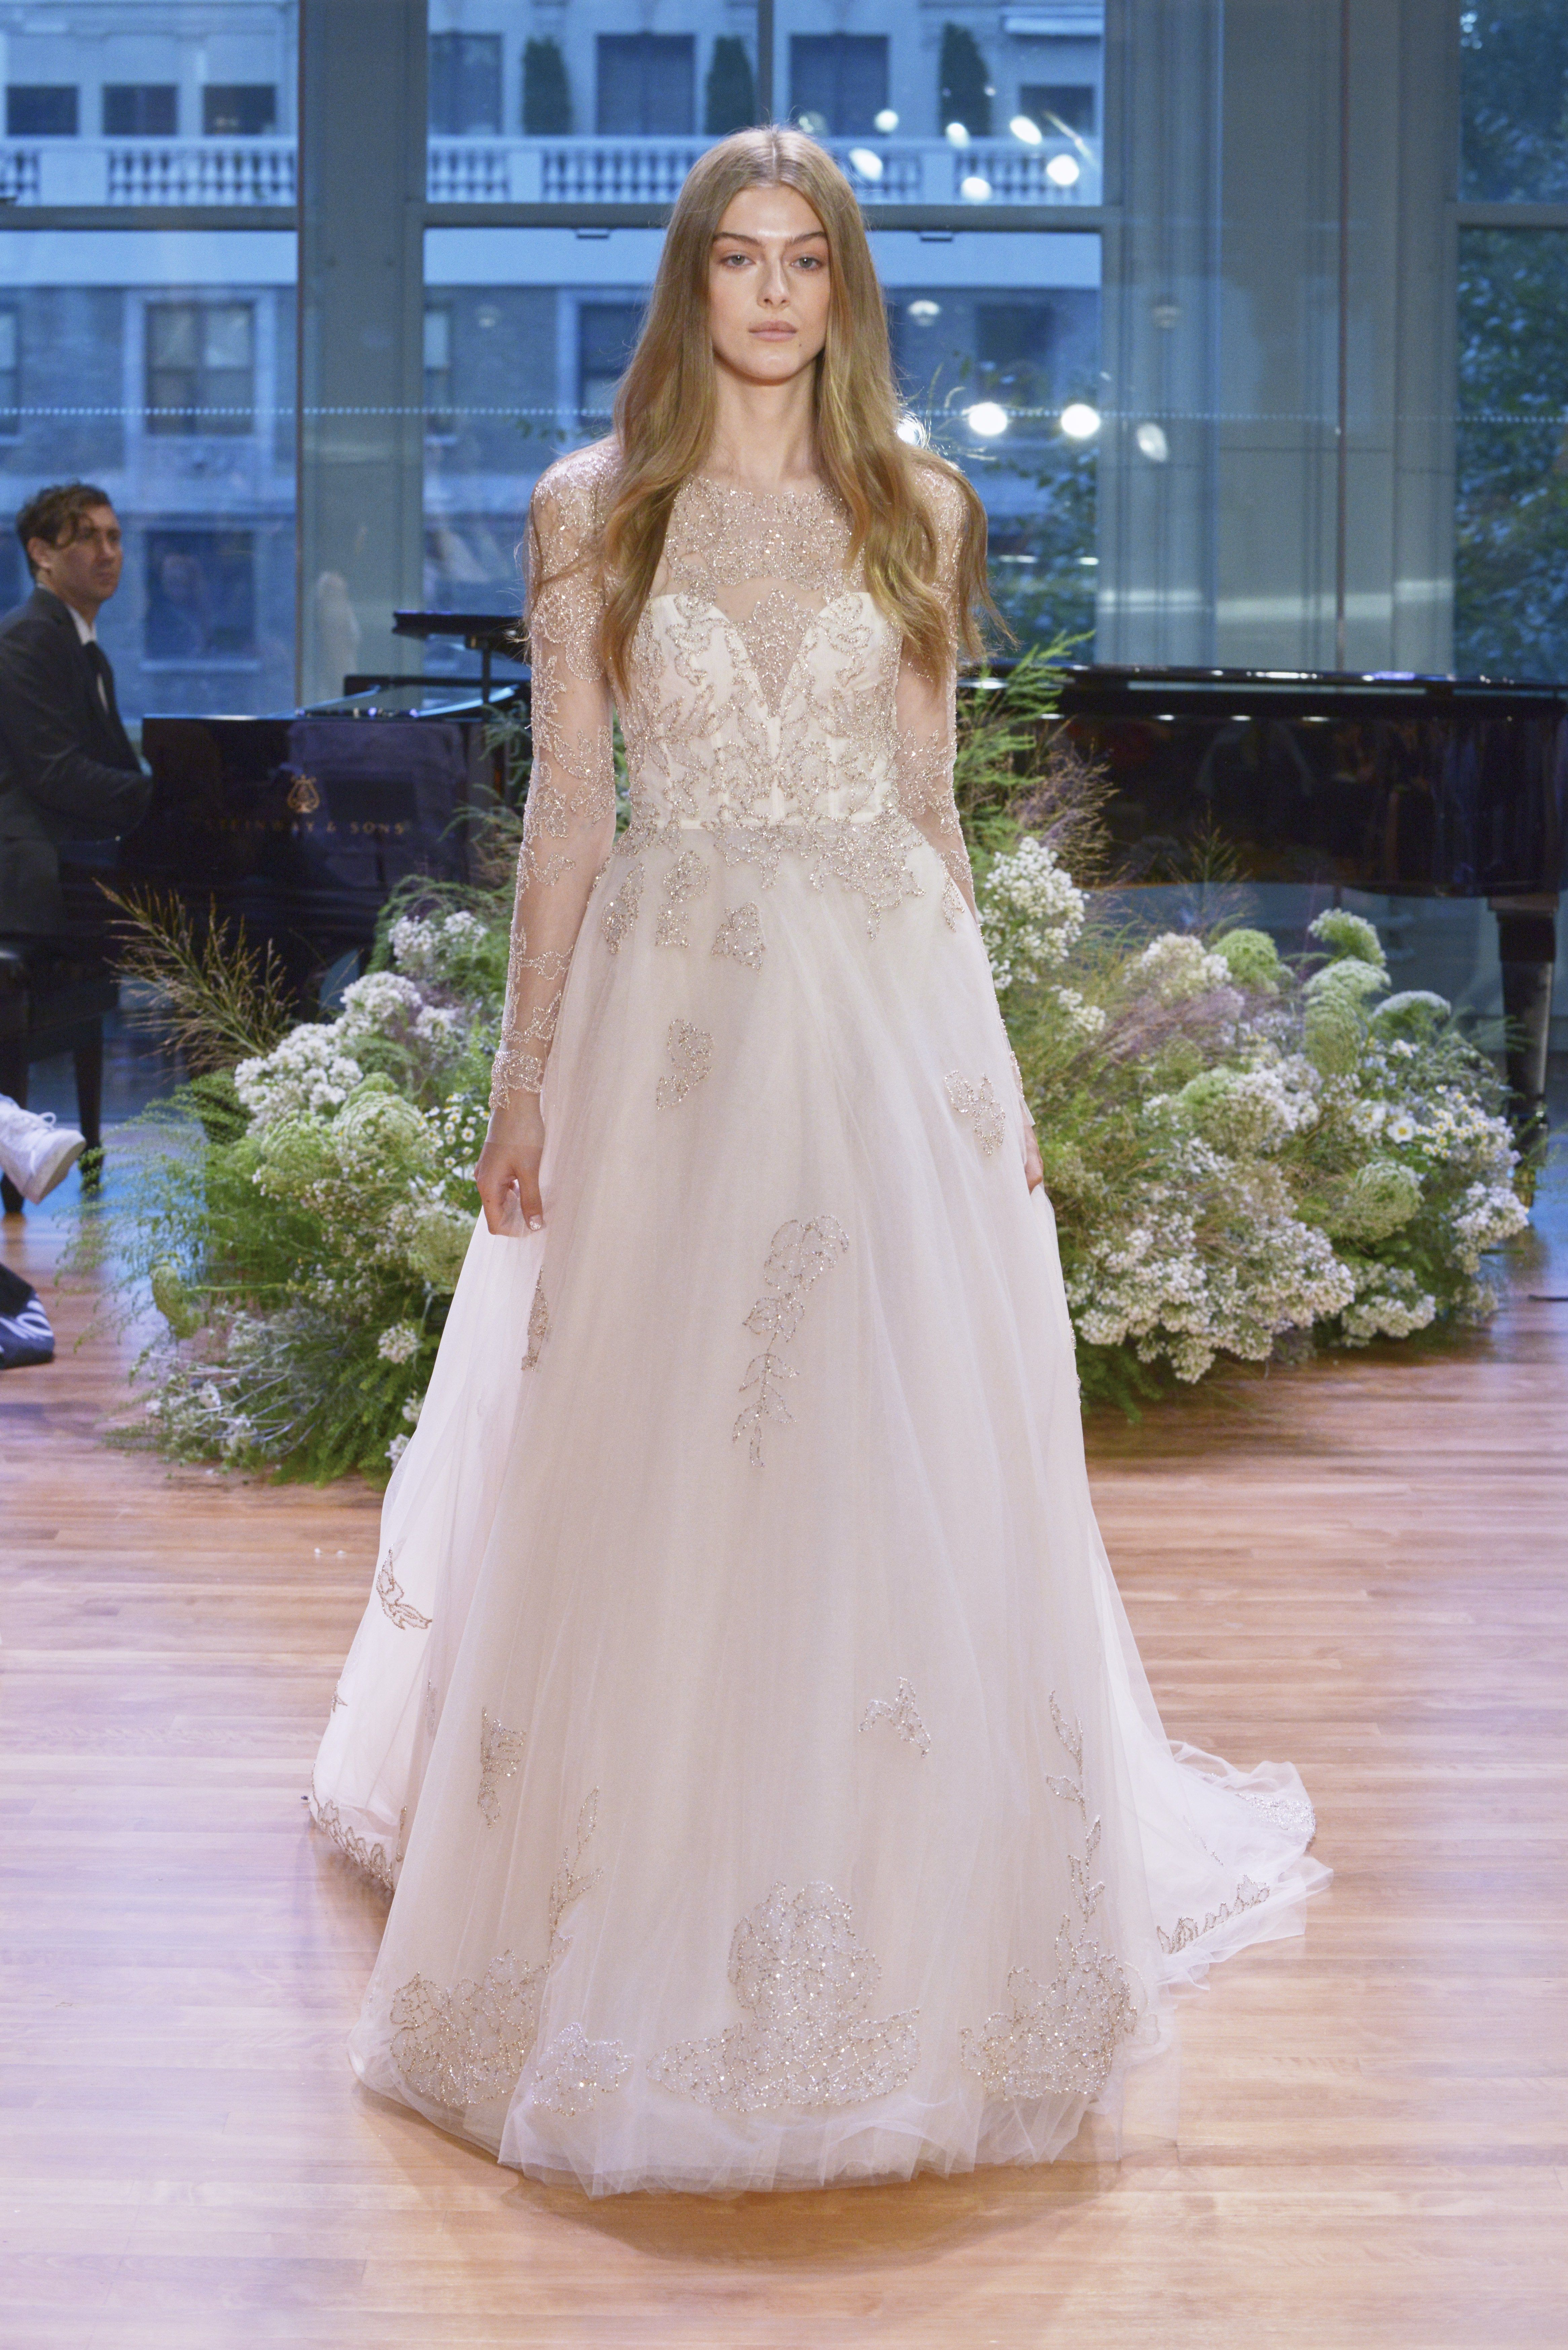 Longsleeve wedding dresses we love for winter wedding dress